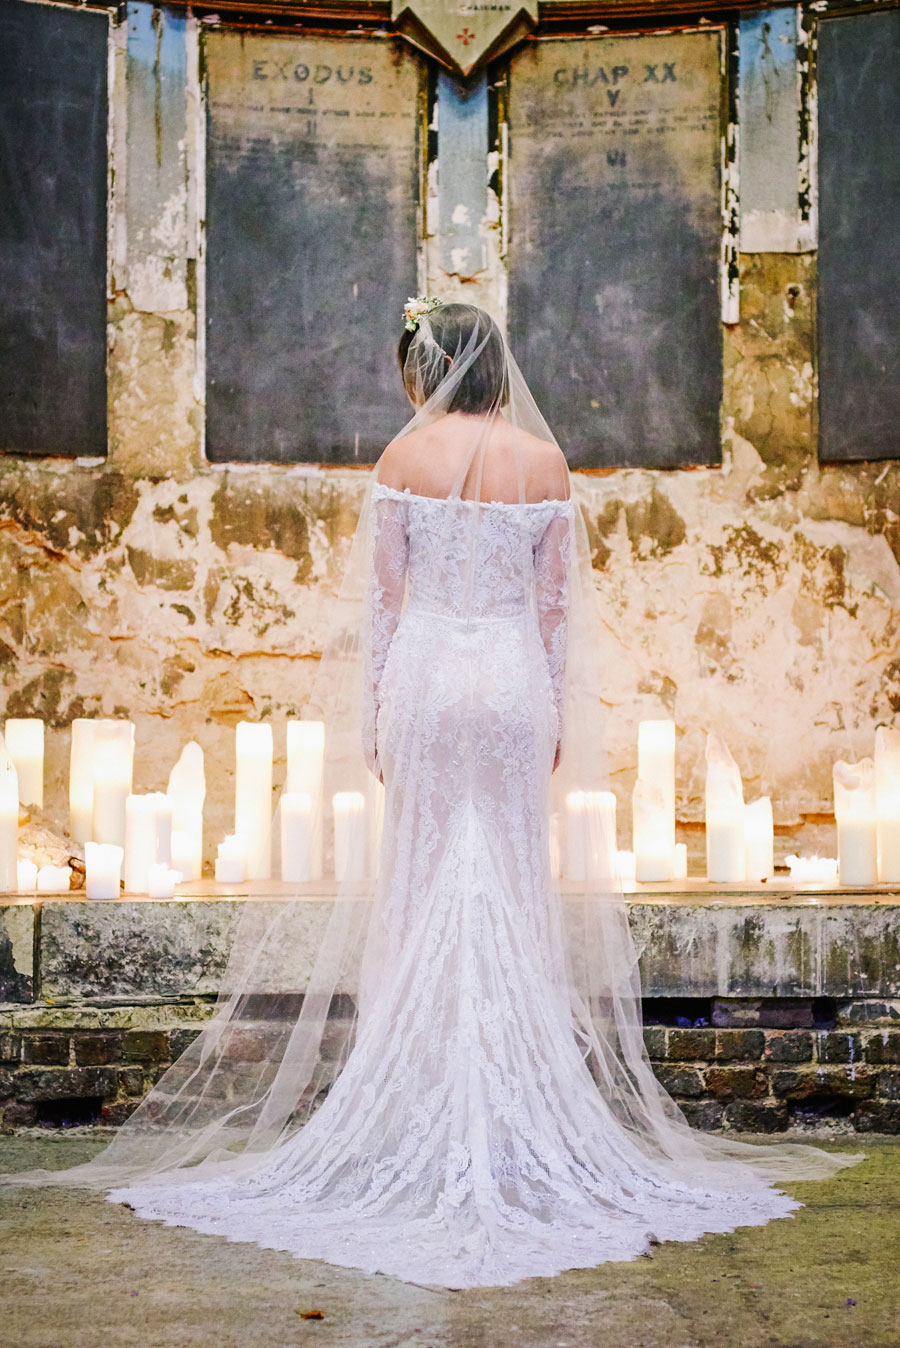 Stunning Off The Shoulder Lace Wedding Dress & Alternative Decaying Chapel Venue Wedding- Ella & Daniel106